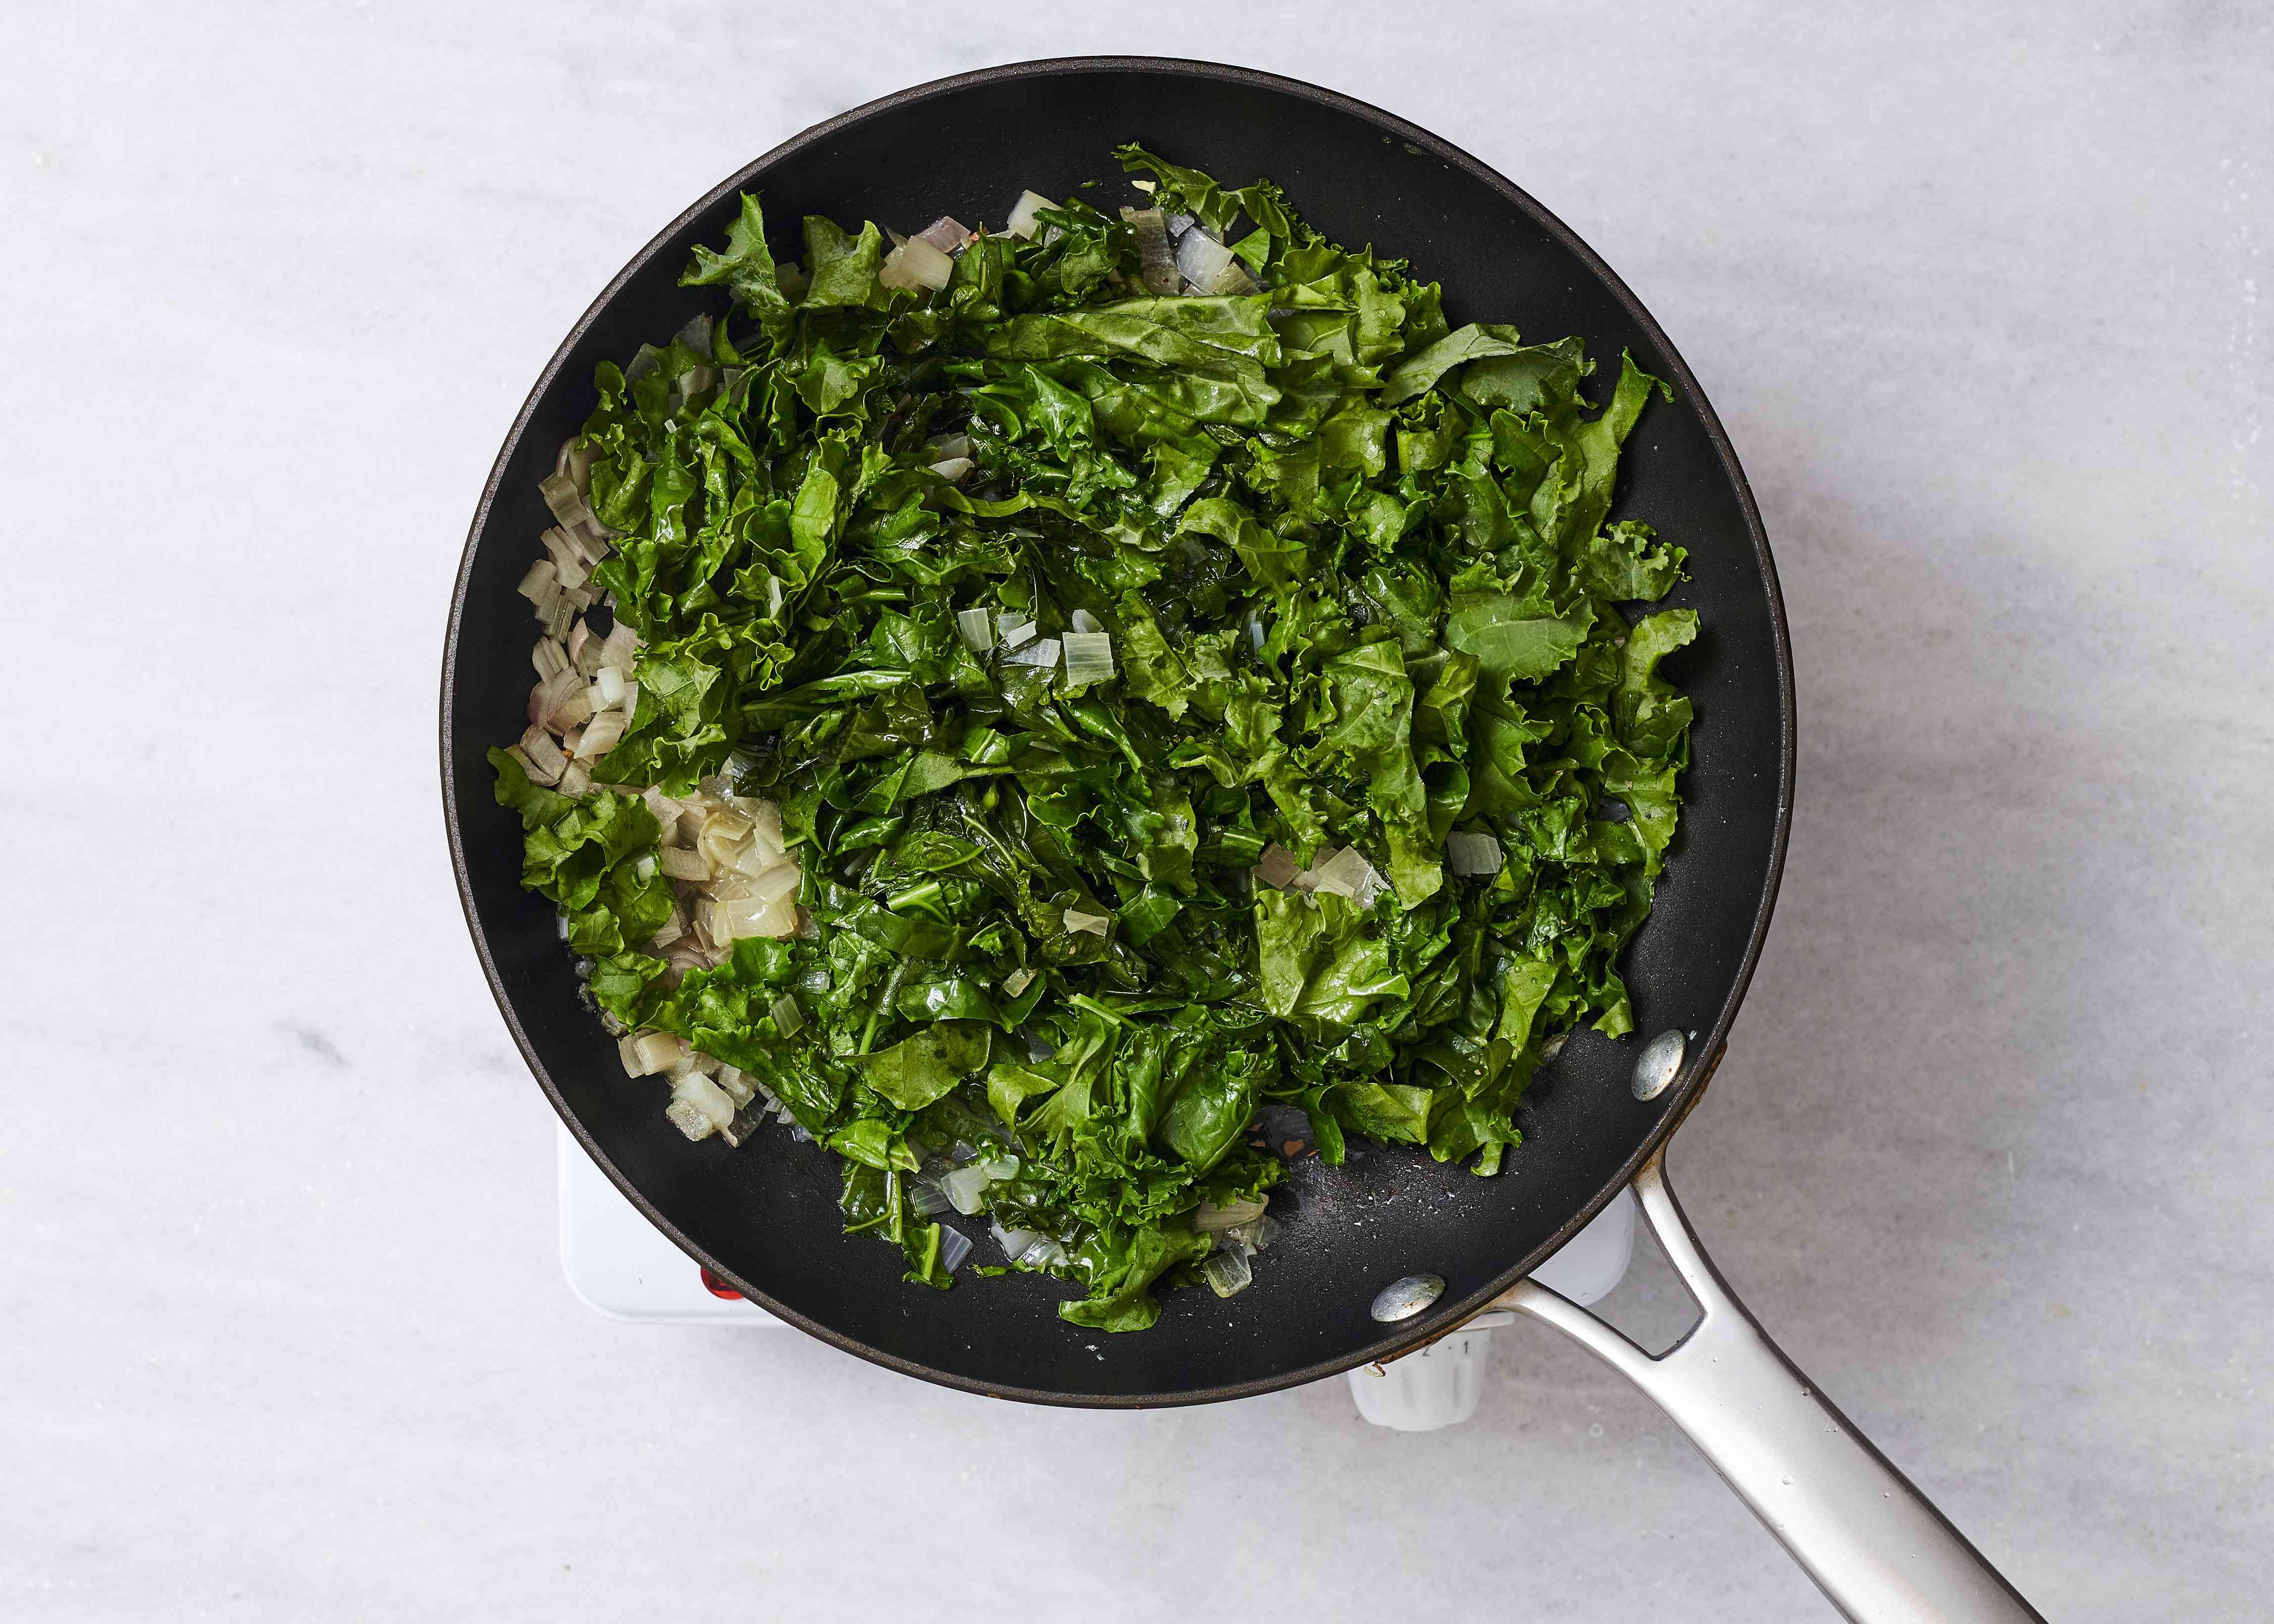 kale cooking in a pan